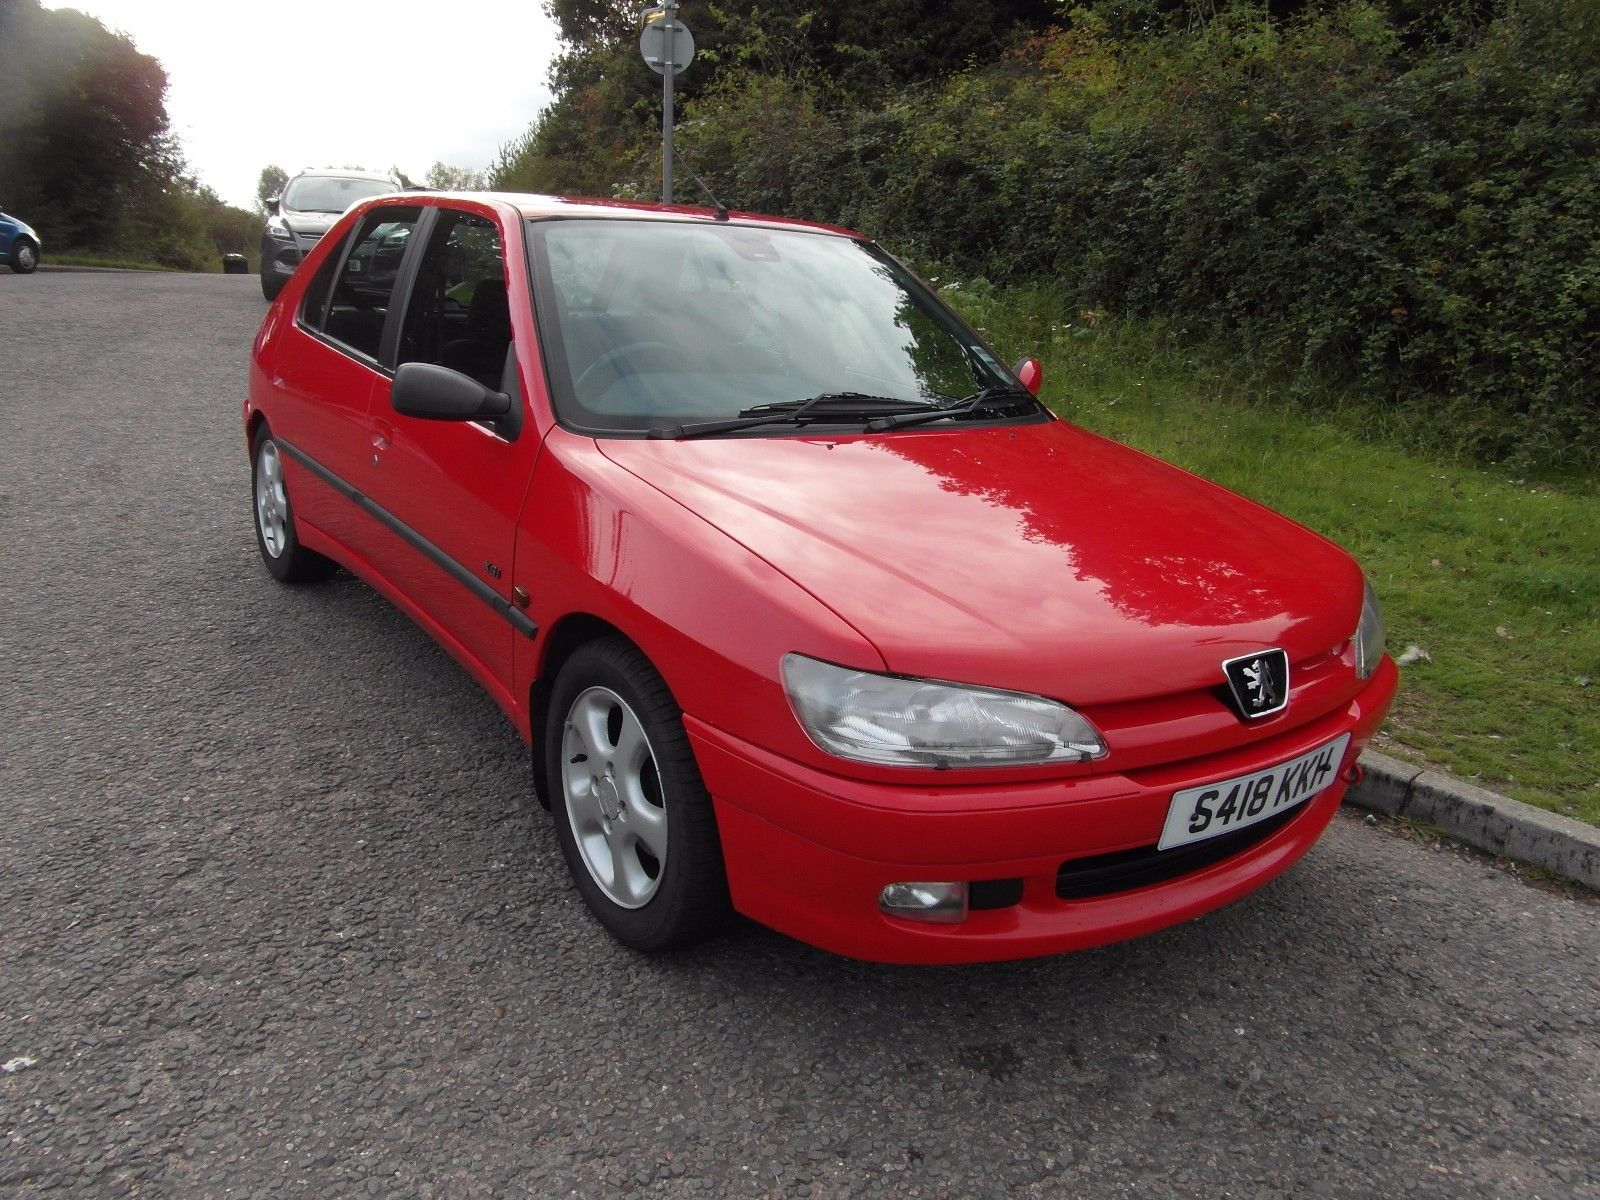 1998 Peugeot 306 2.0 XSI 5 door 1 owner from new Future classic cars gti